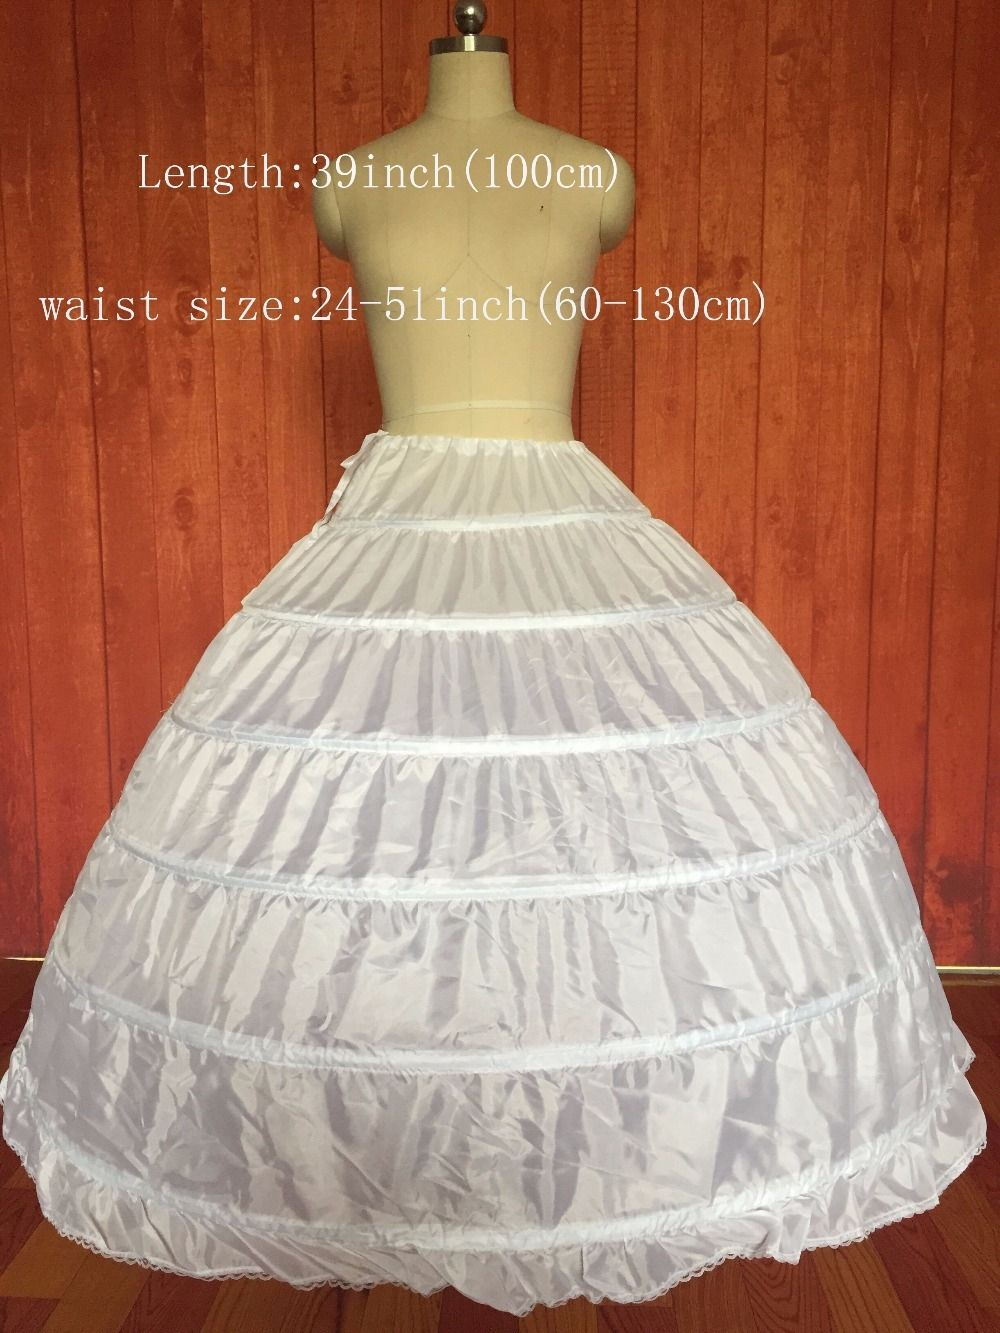 a6ae8ca52e2b 6-HOOP Wedding Prom Ball Petticoat Wedding Gown Crinoline Petticoat Skirt  Slip